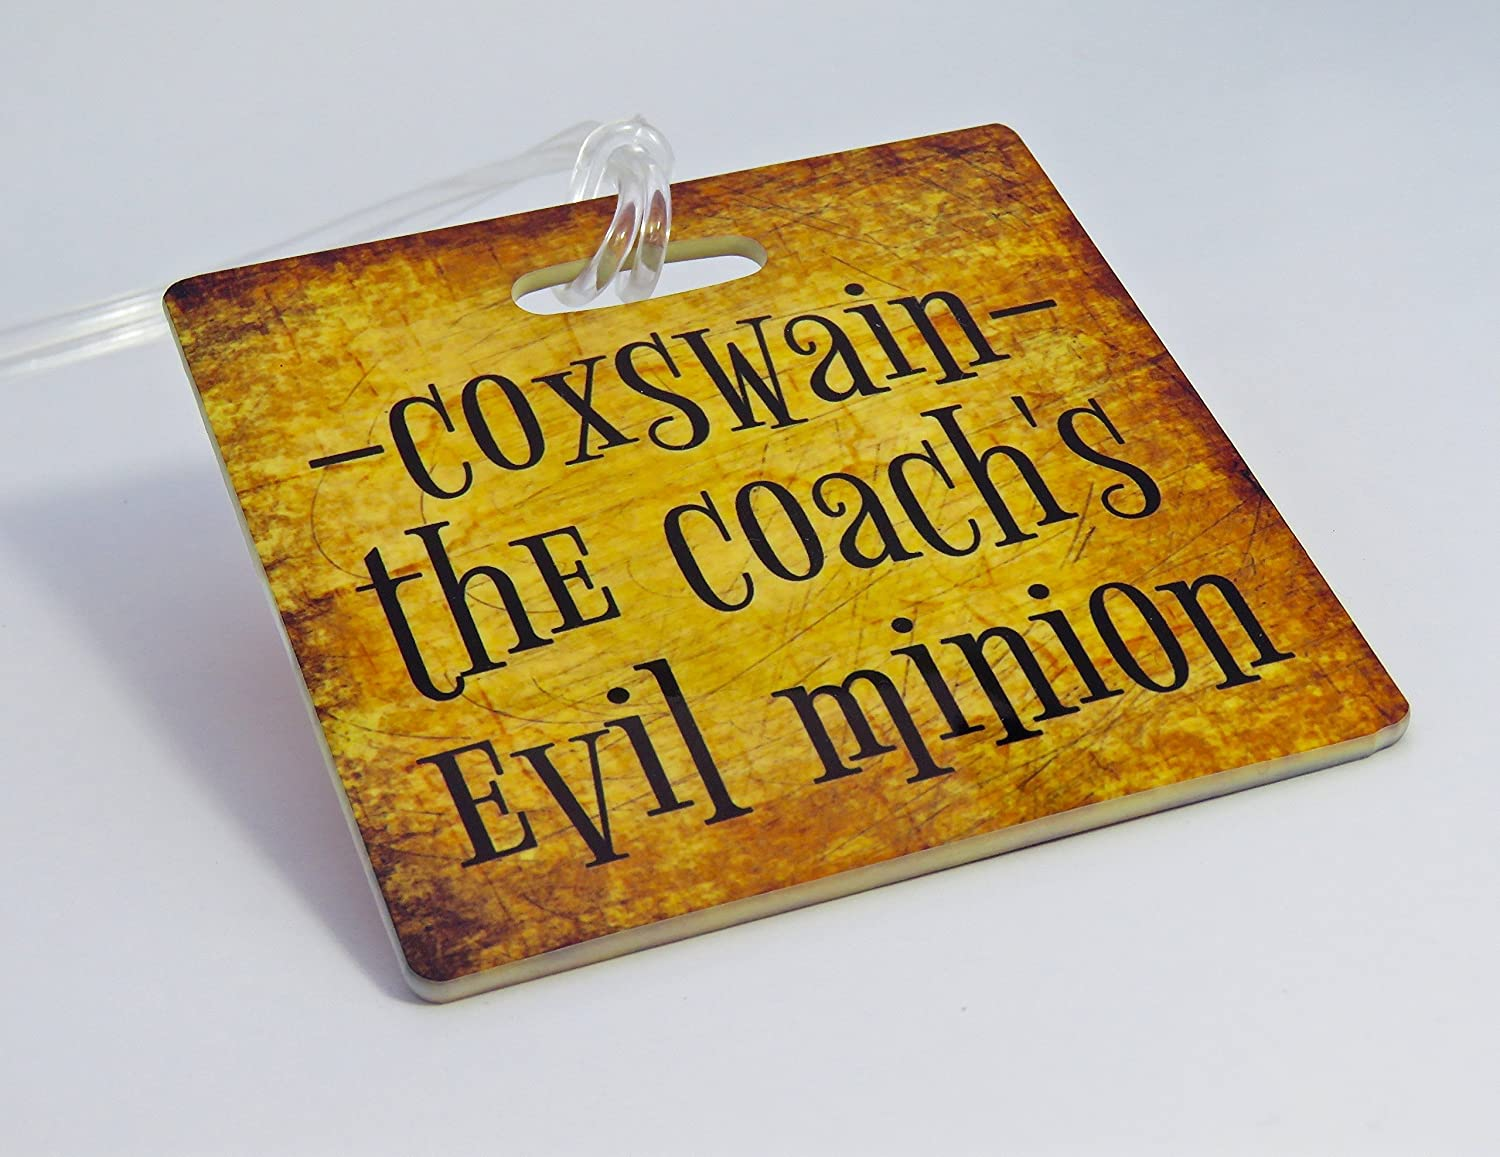 Coxswain Bag Tag